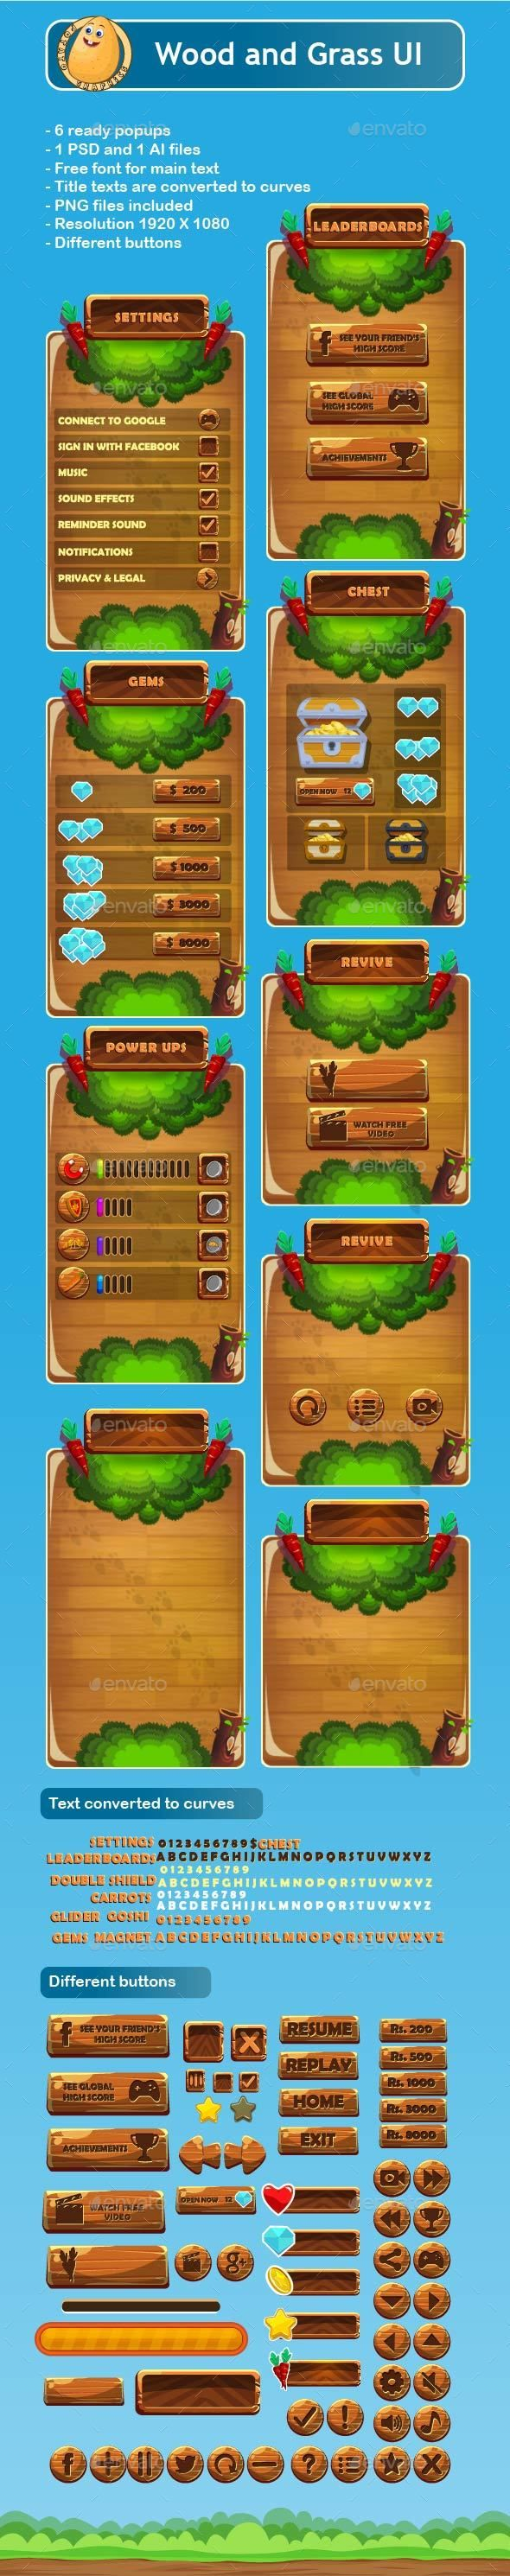 Wood and Grass Game UI   Download: https://graphicriver.net/item/wood-and-grass-game-ui/18057210?ref=sinzo #Interfaces #Game #Assets